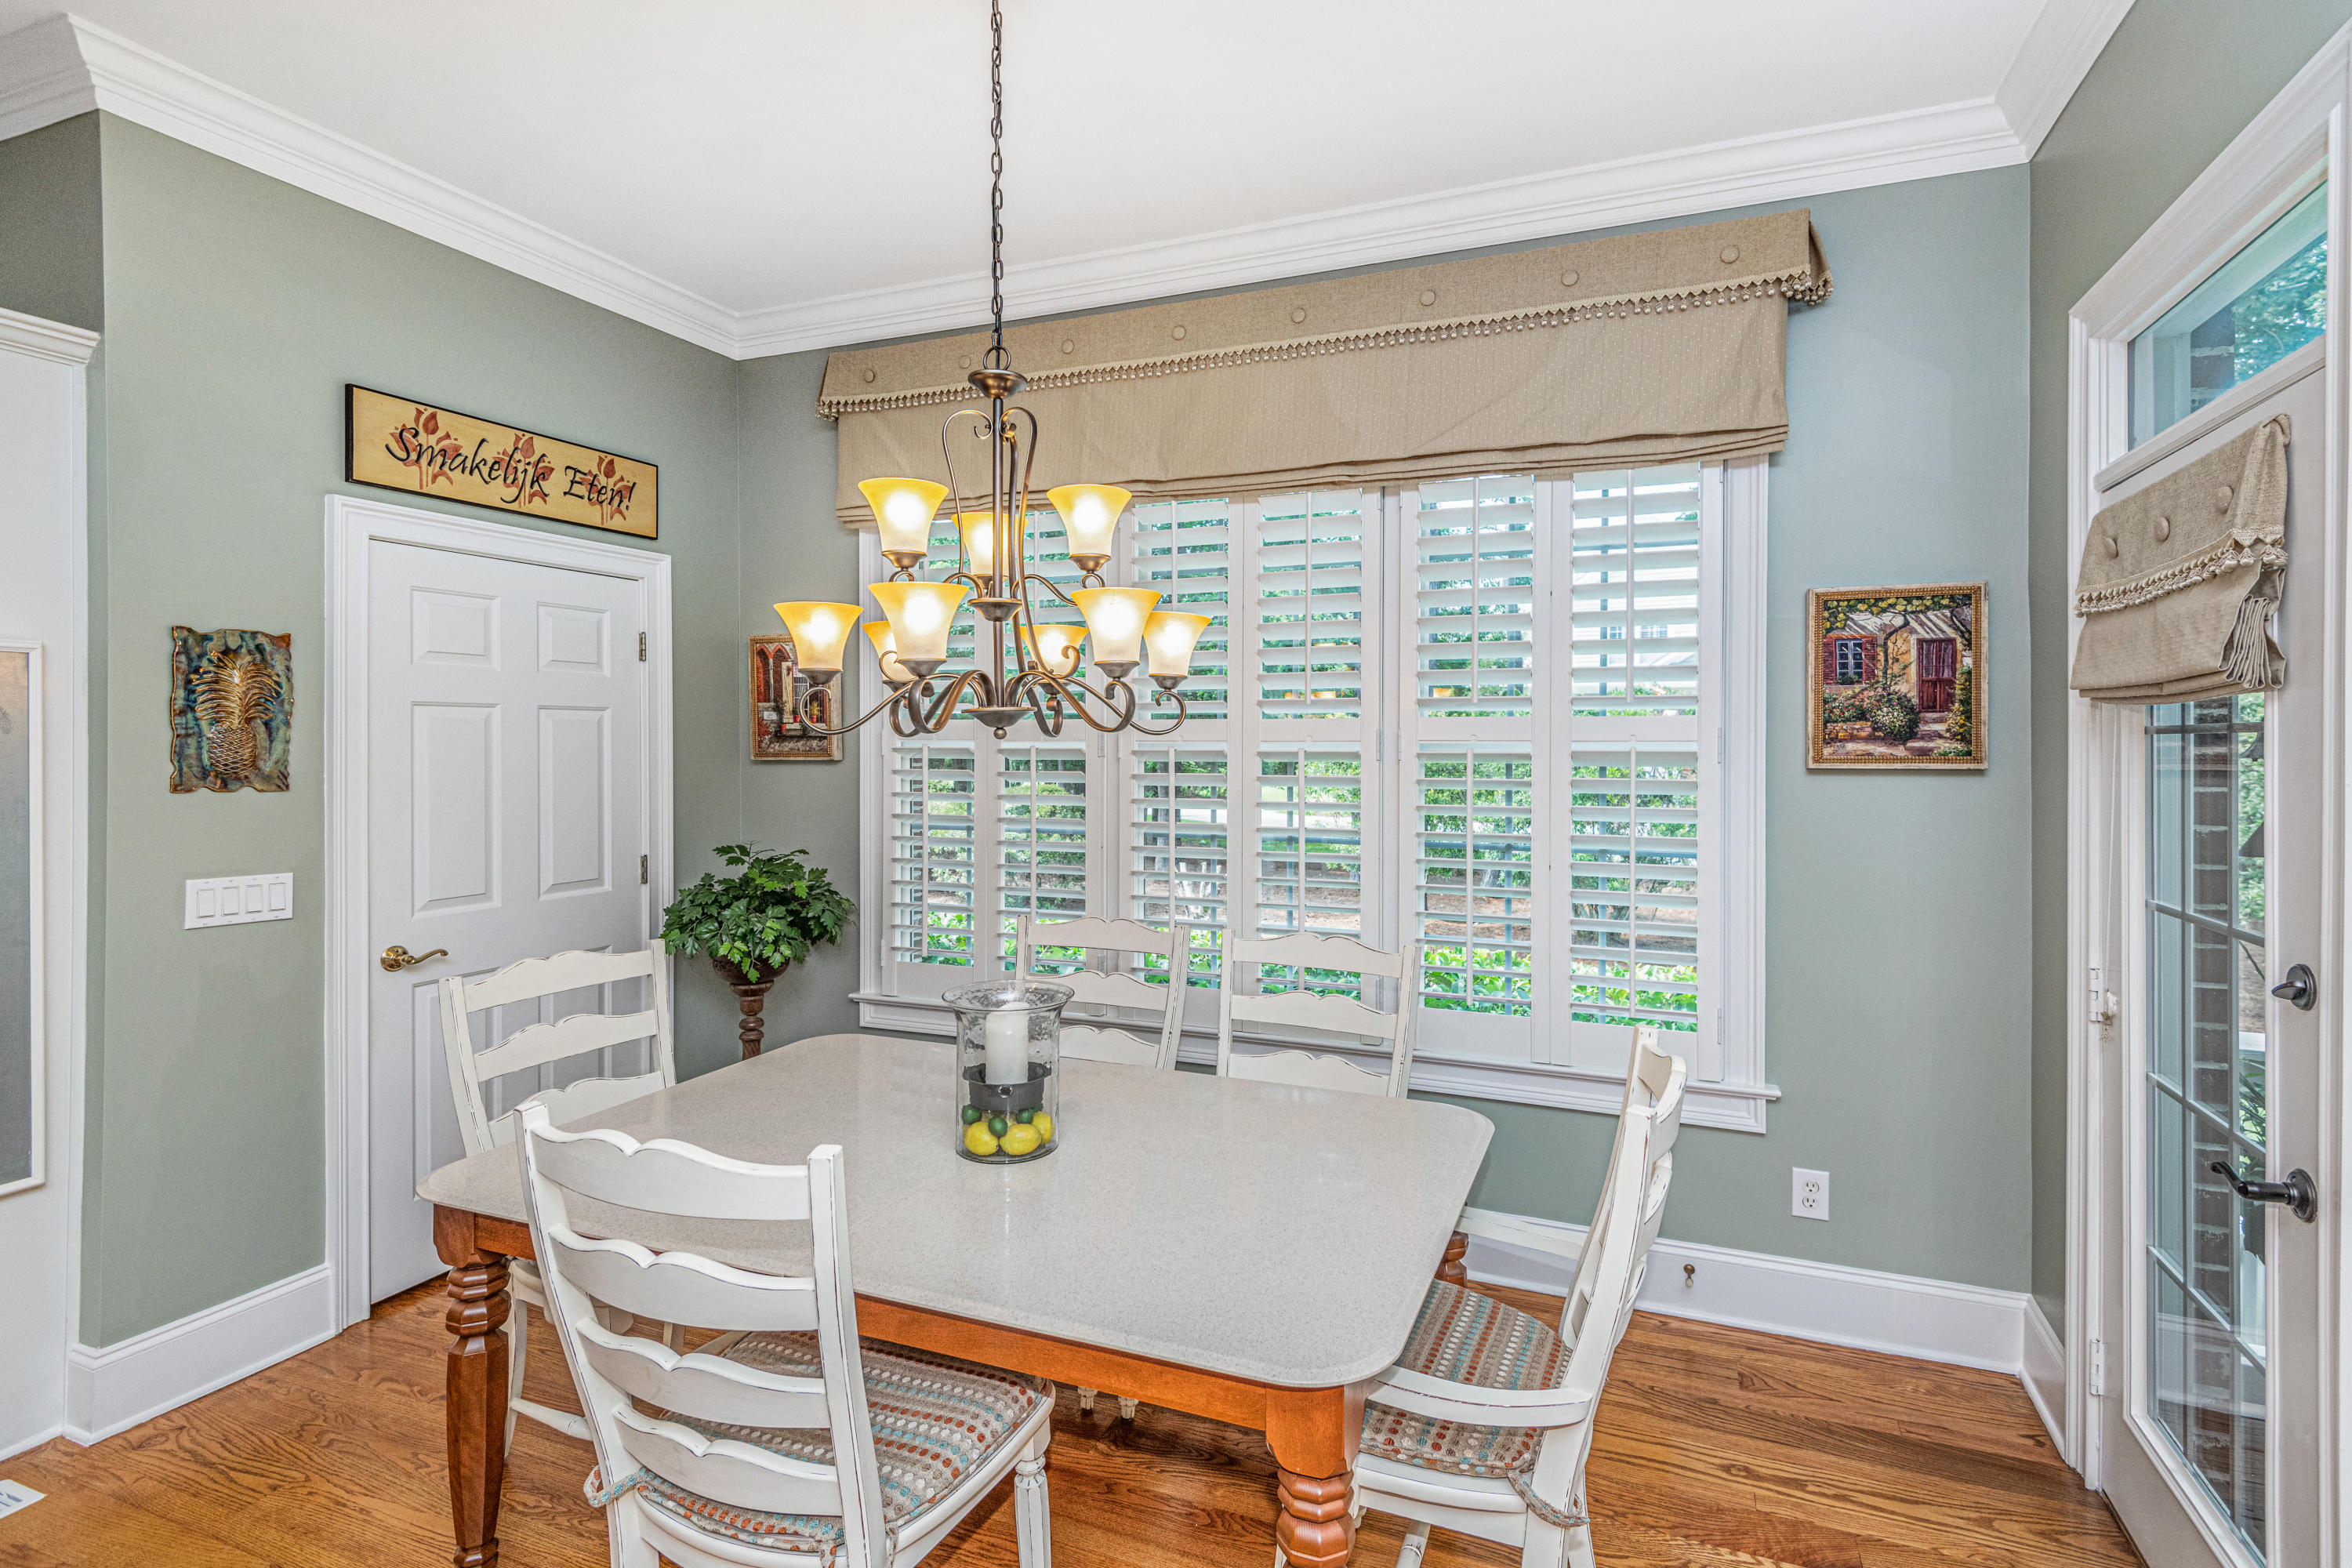 Dunes West Homes For Sale - 1837 Shell Ring, Mount Pleasant, SC - 23